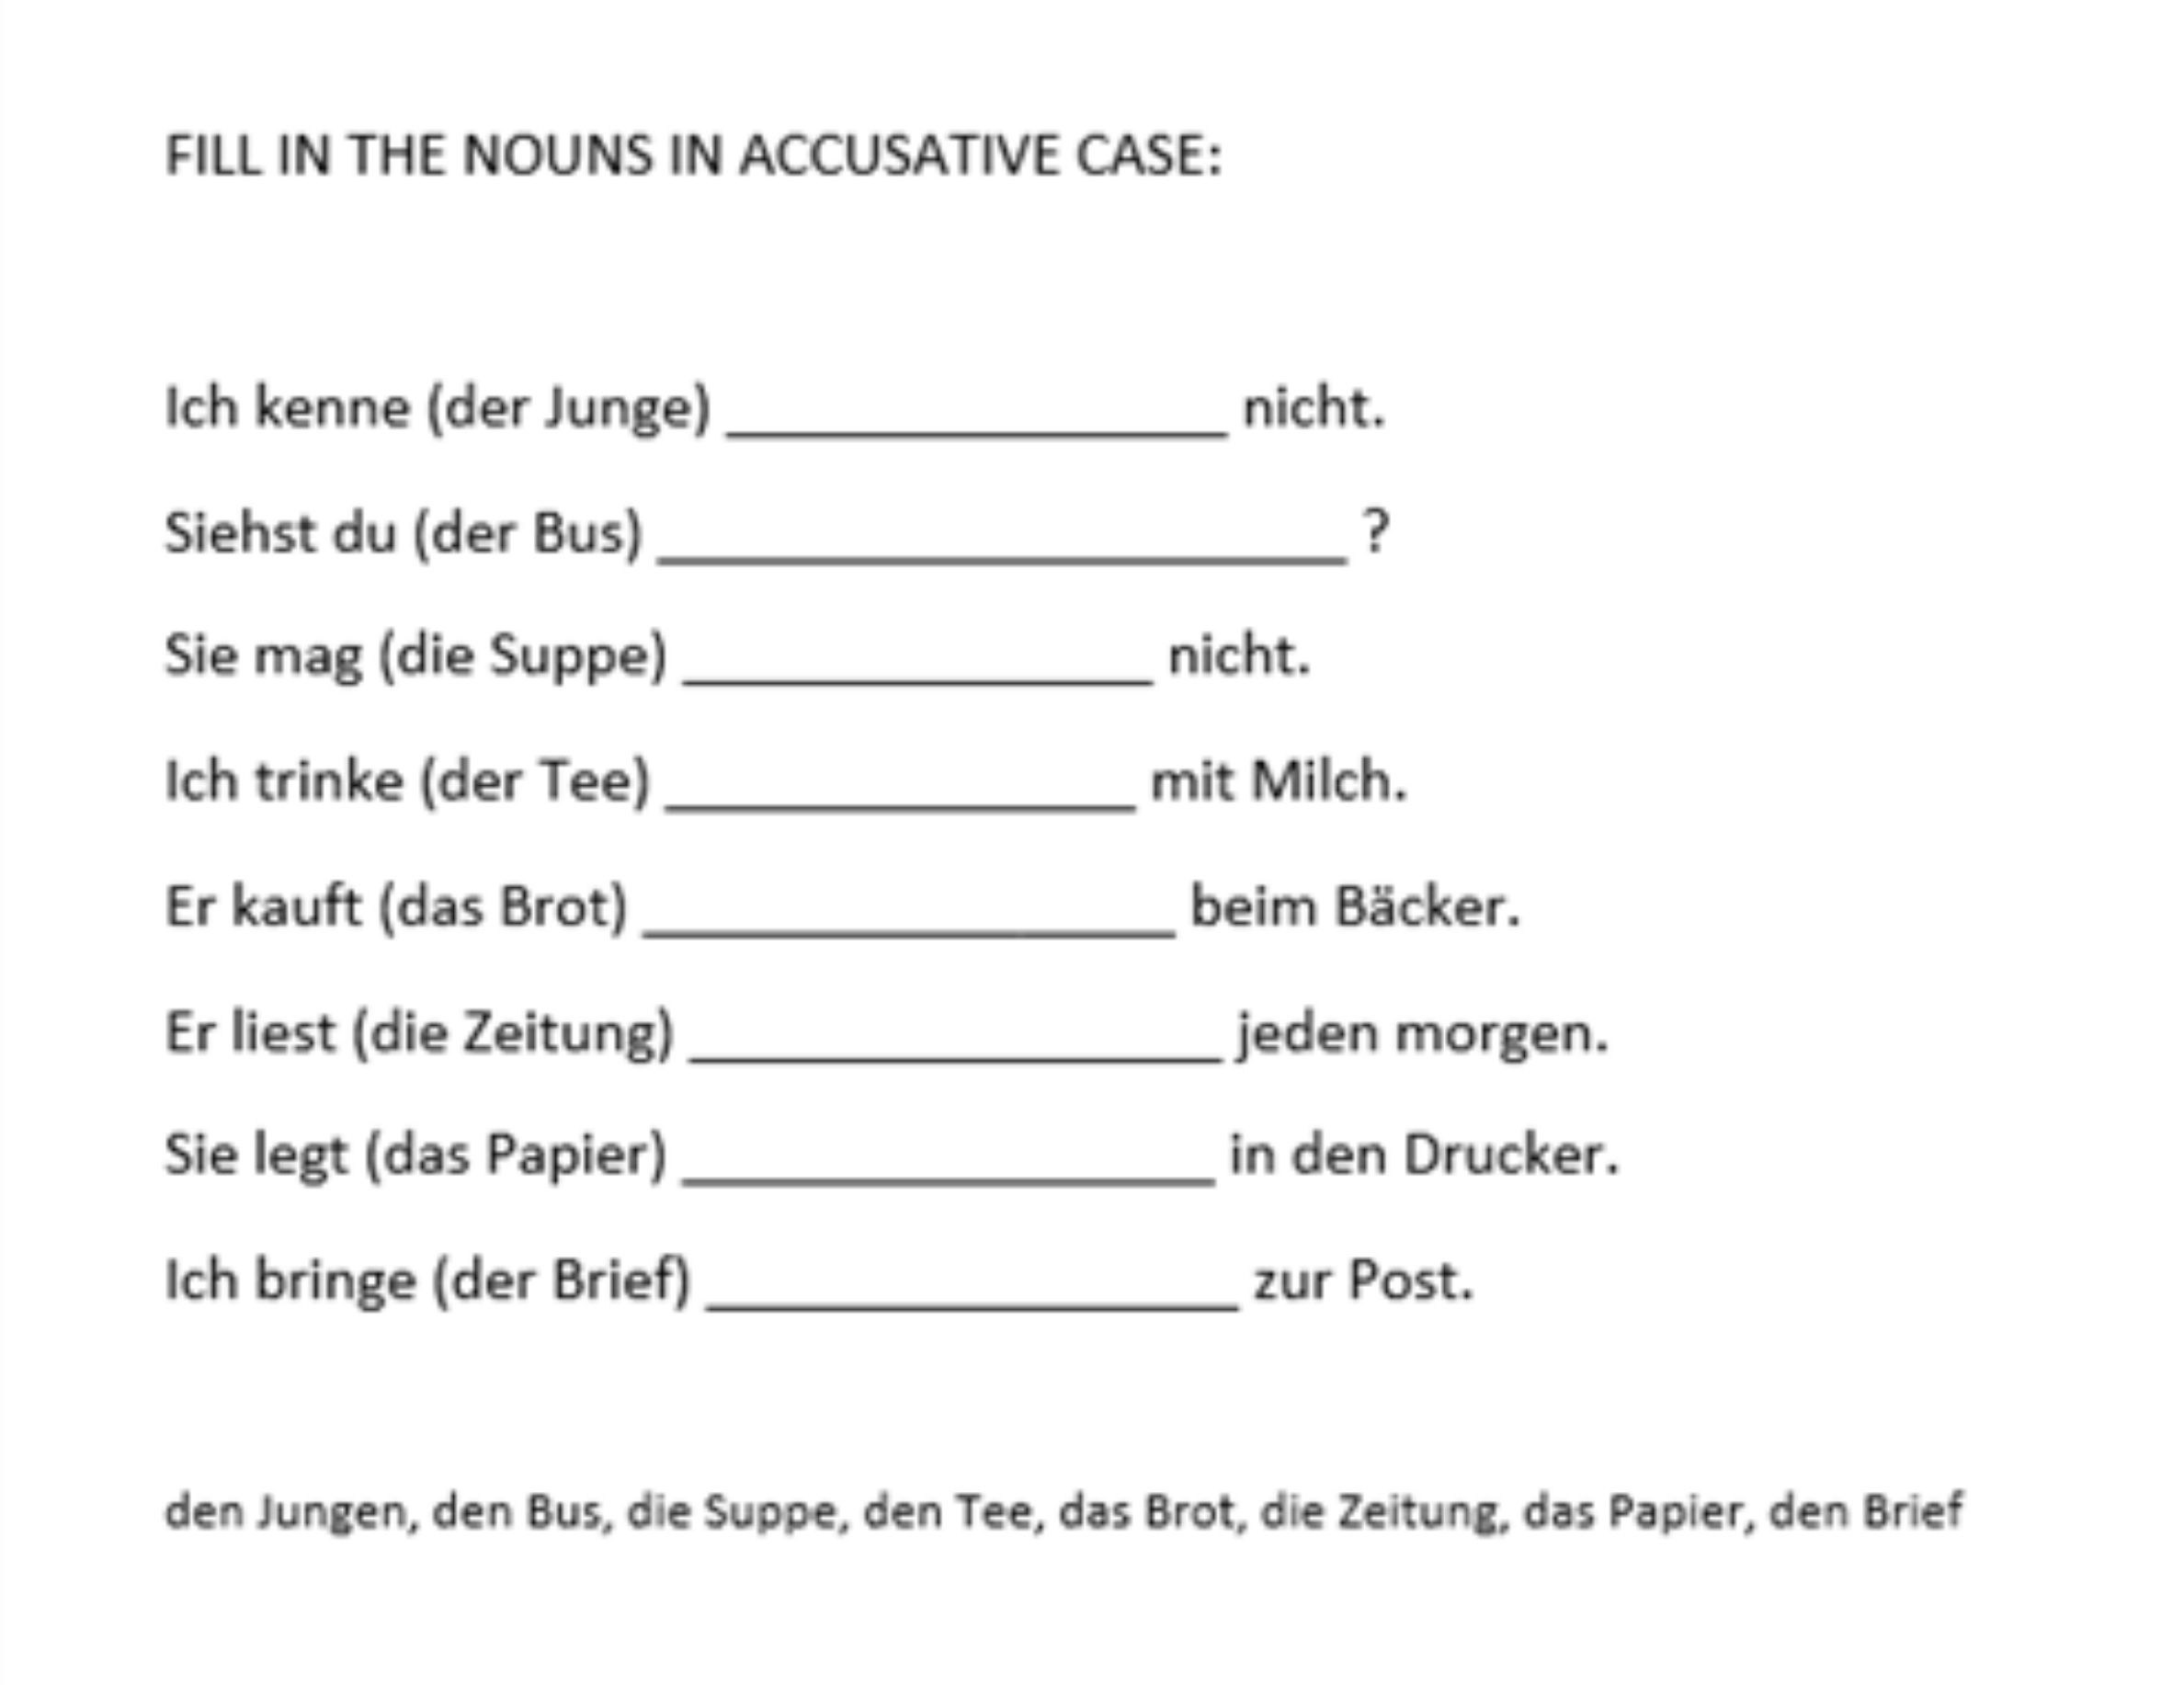 worksheet German Cases Worksheet exercise accusative or dative case www my german course com course